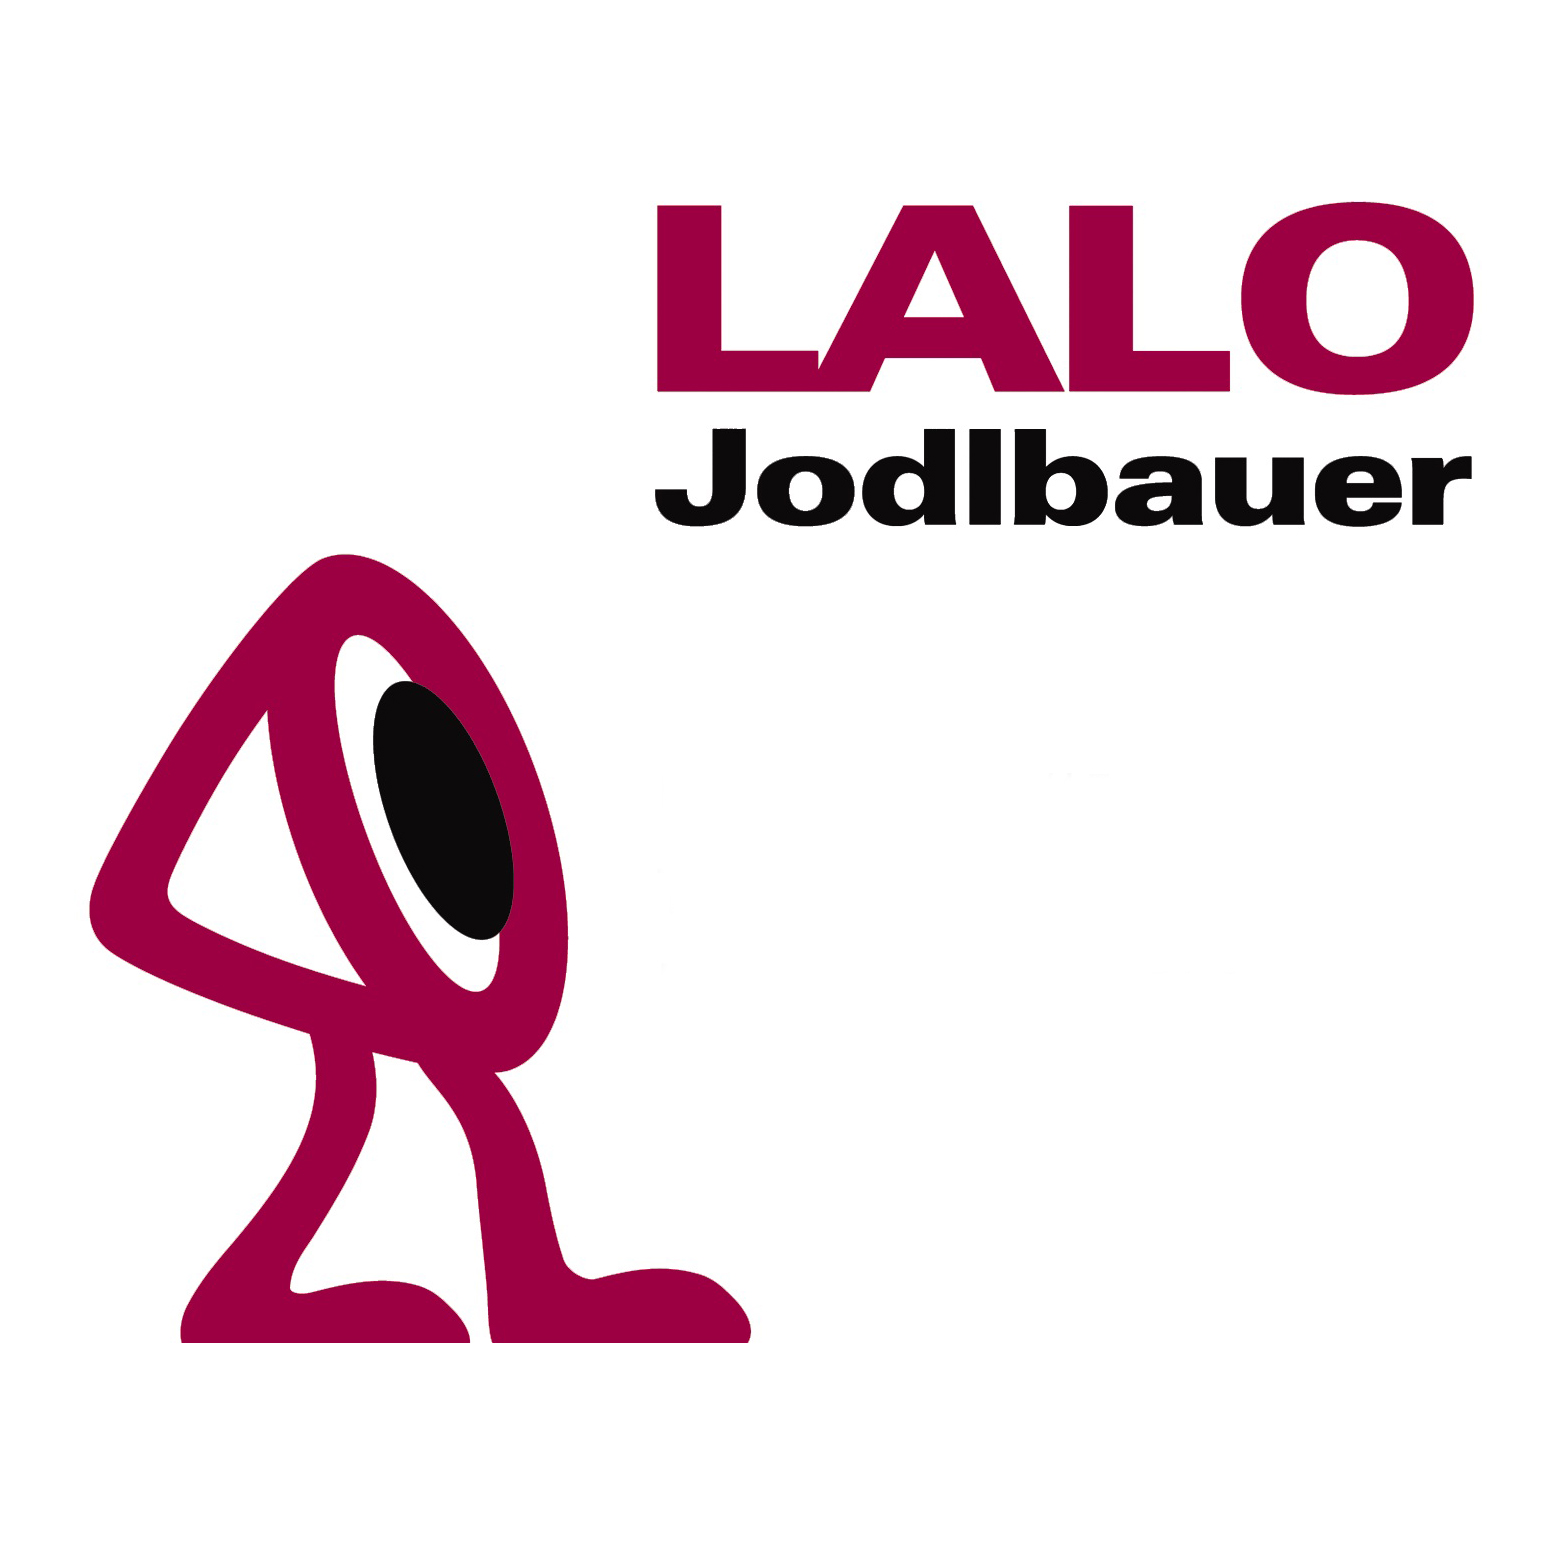 lalo-jodlbauer